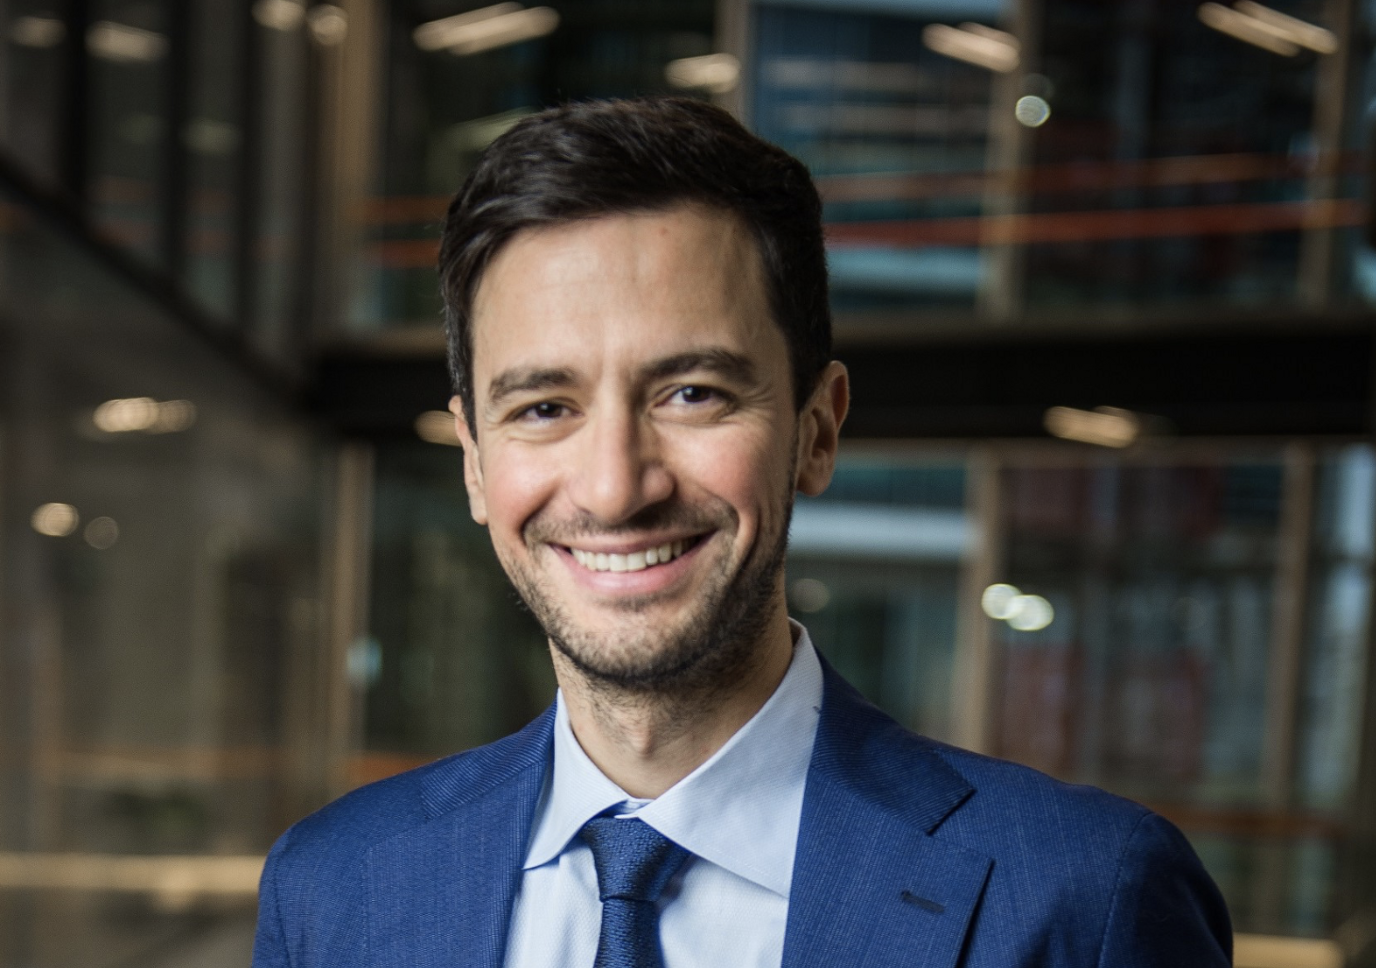 Andrea Bonaceto, the CEO of Eterna Capital, Joins SingularityNET as